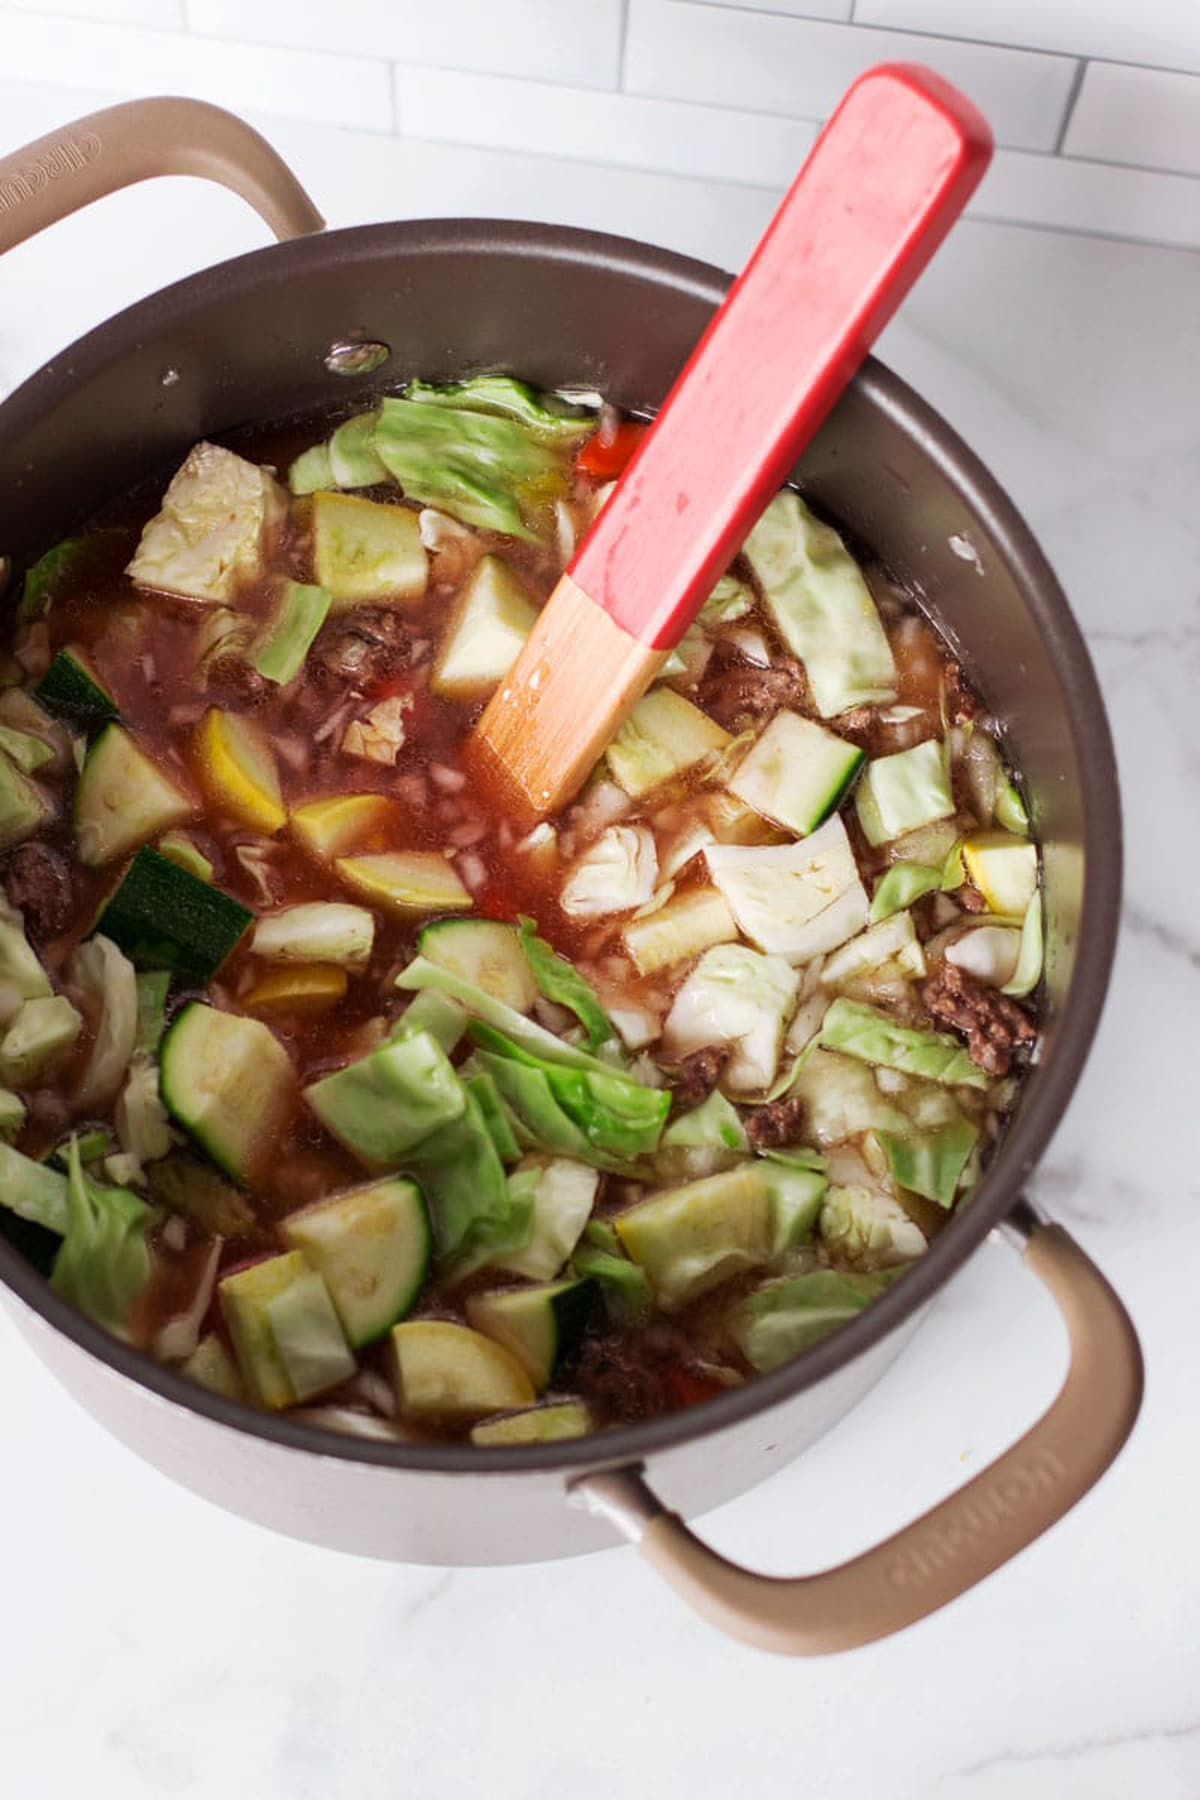 Pot containing a soup with cabbage, squash, zucchini, and hamburger meat.